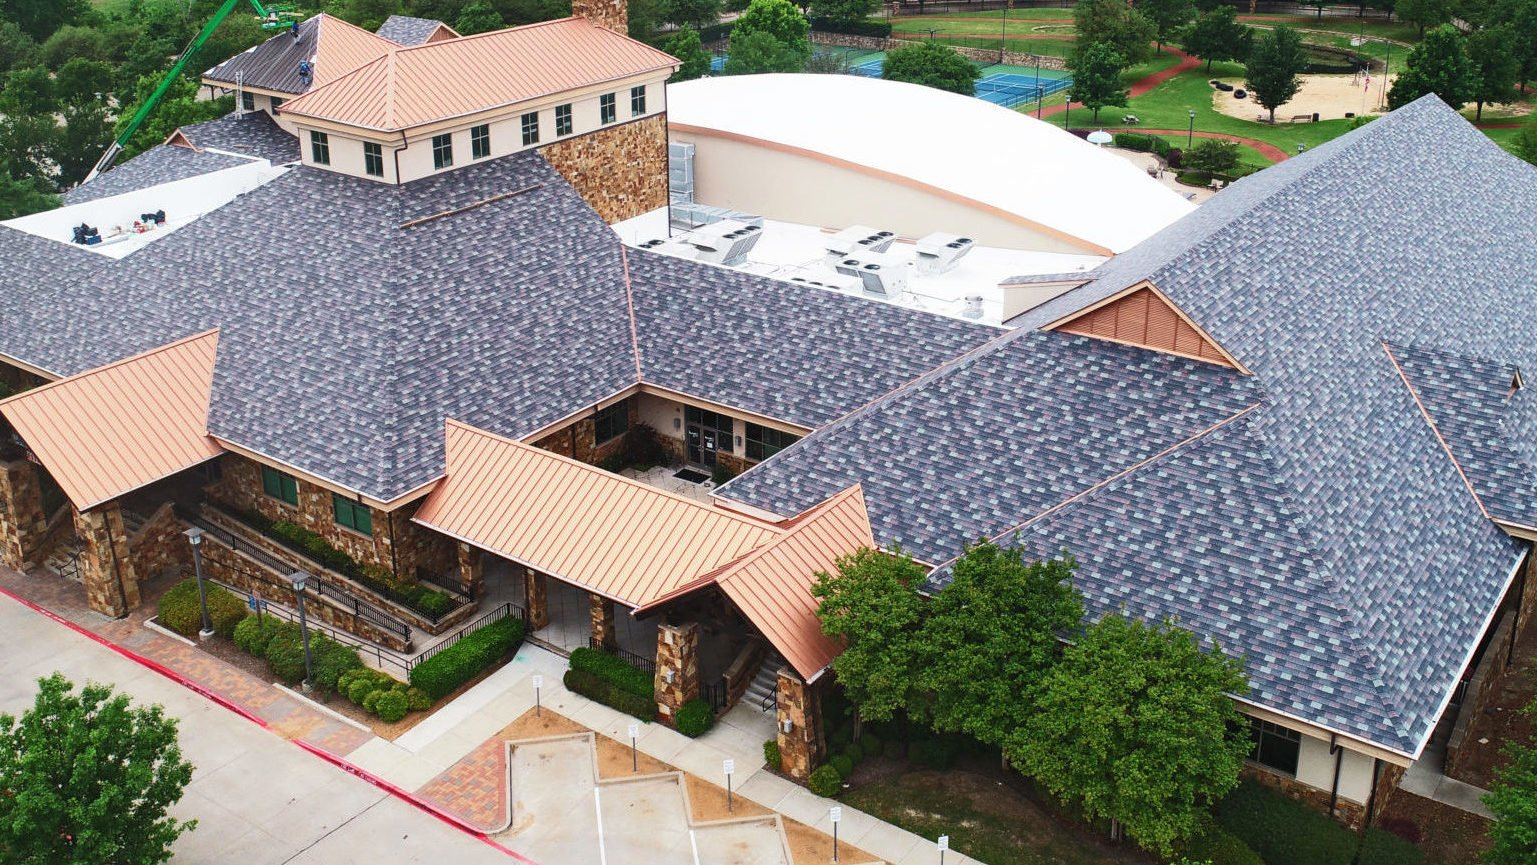 Fitness Center Roofing